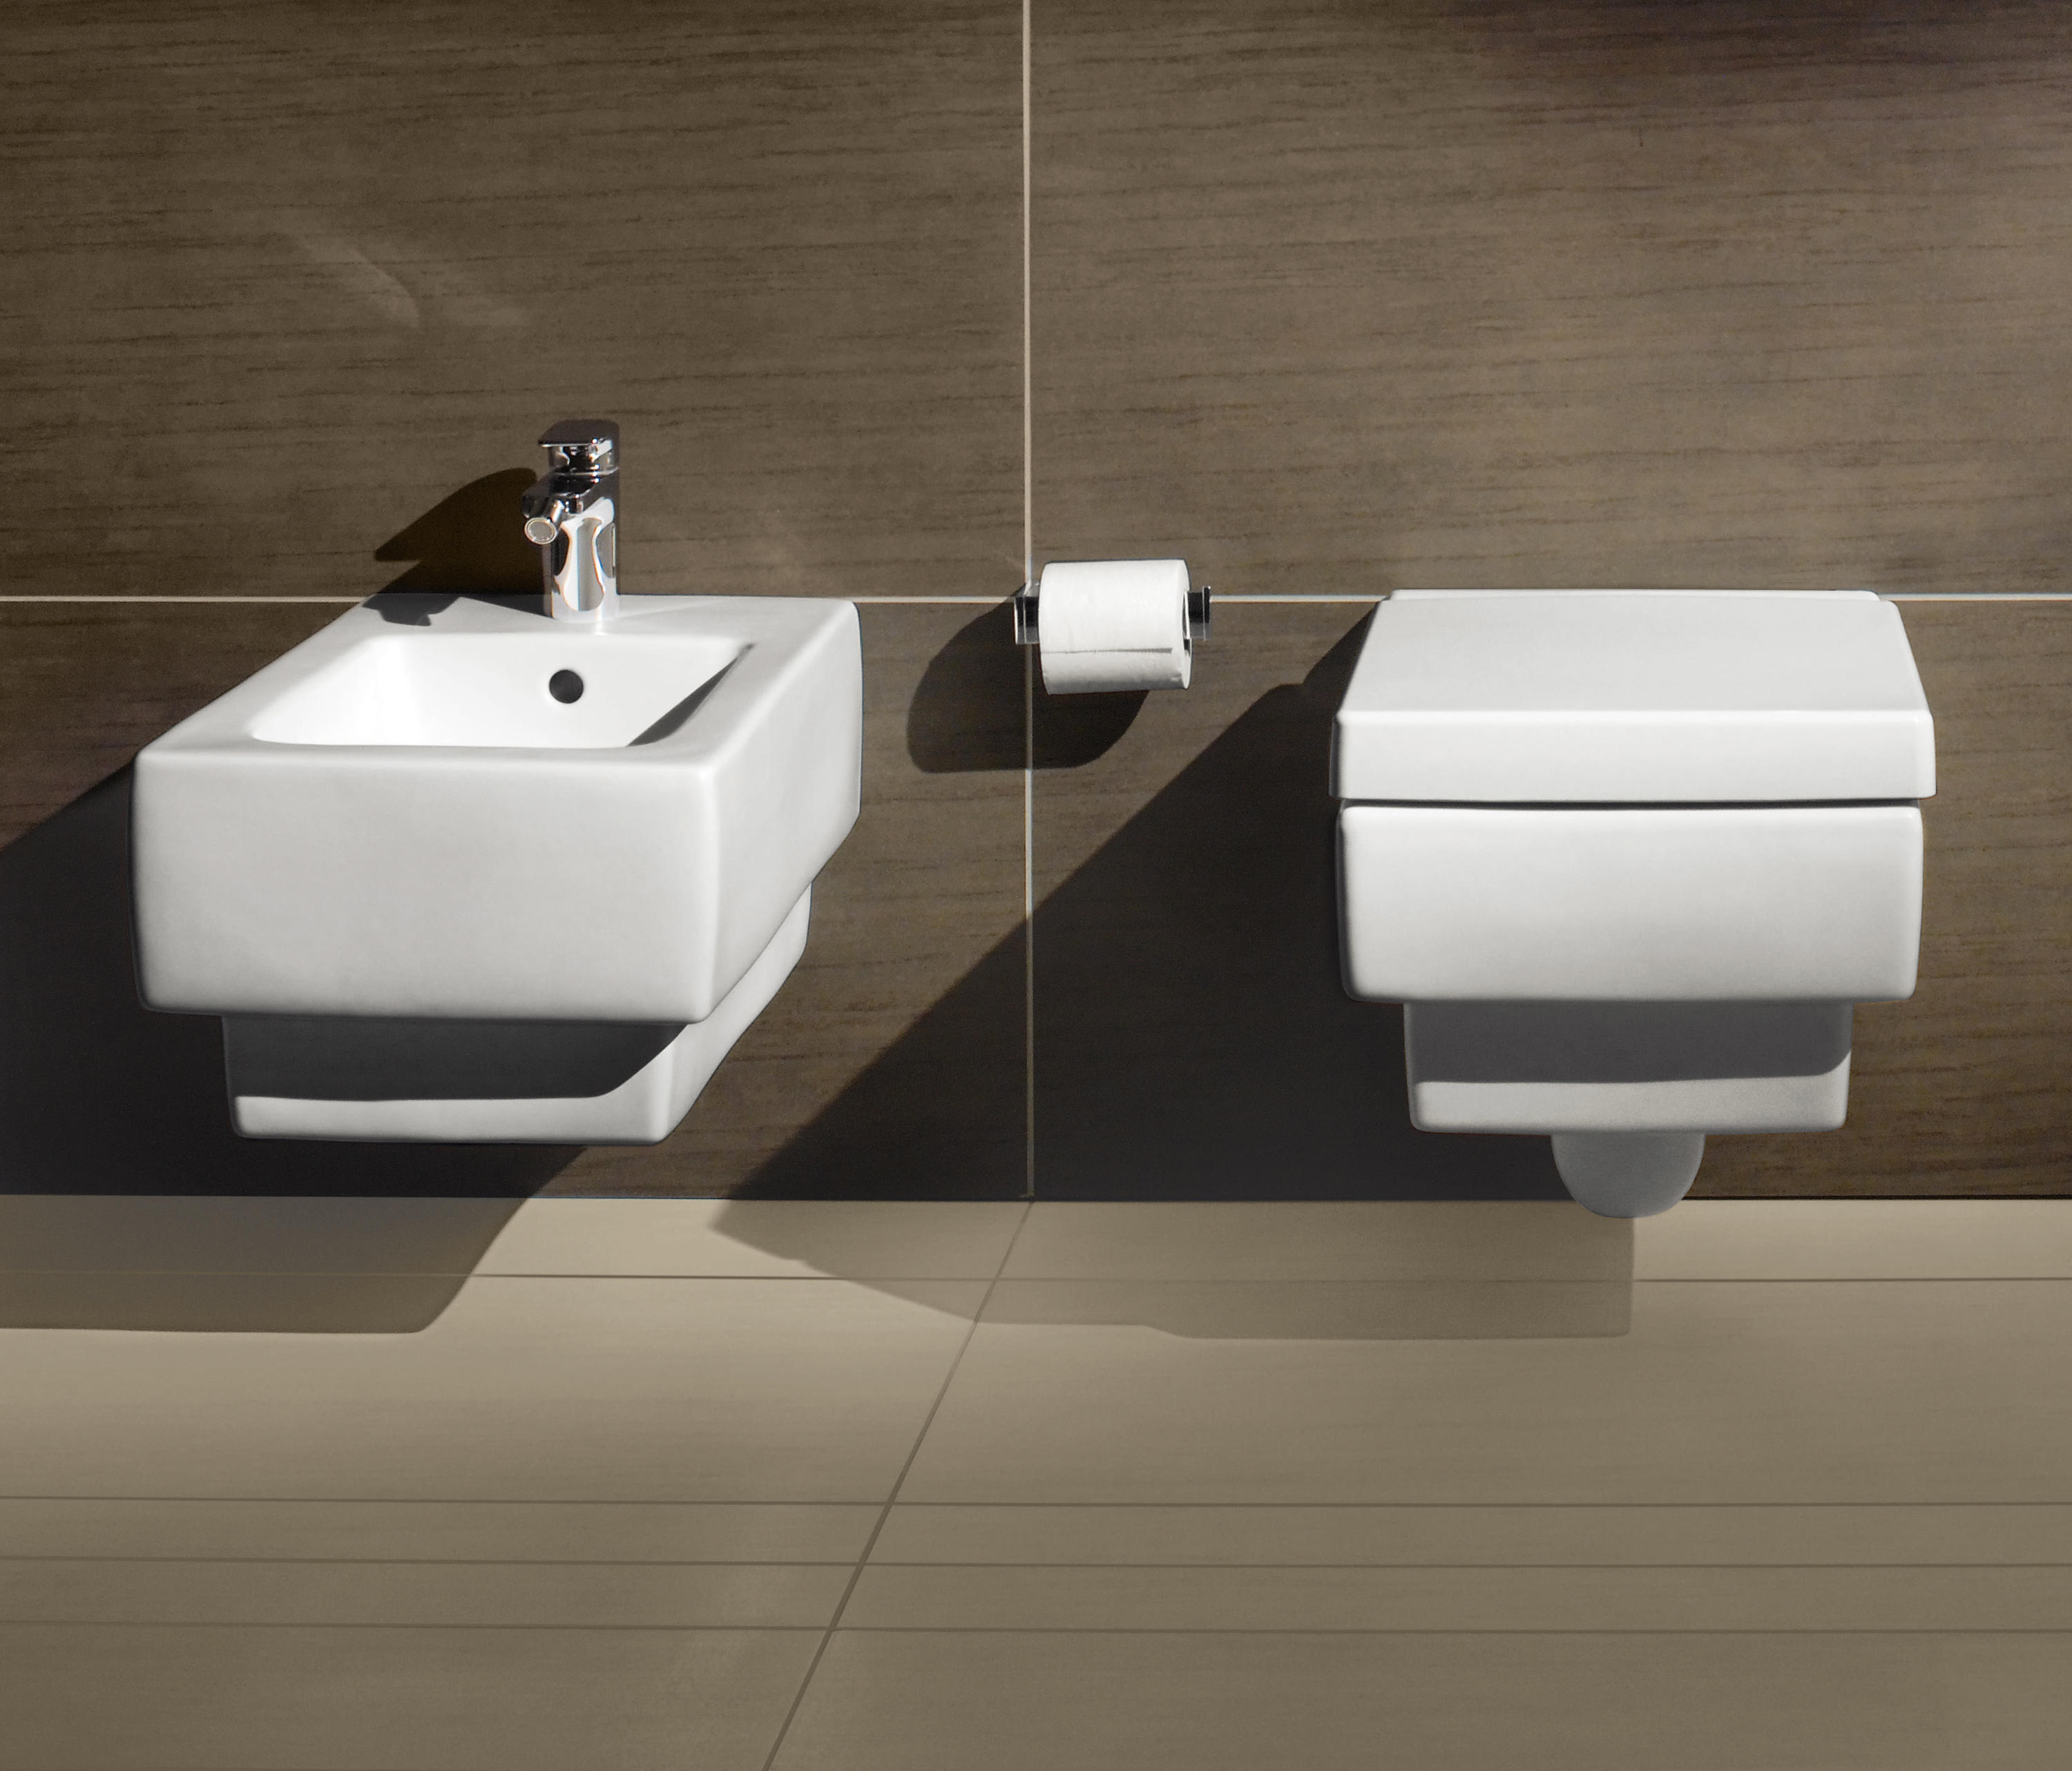 memento washbasin wash basins from villeroy boch. Black Bedroom Furniture Sets. Home Design Ideas